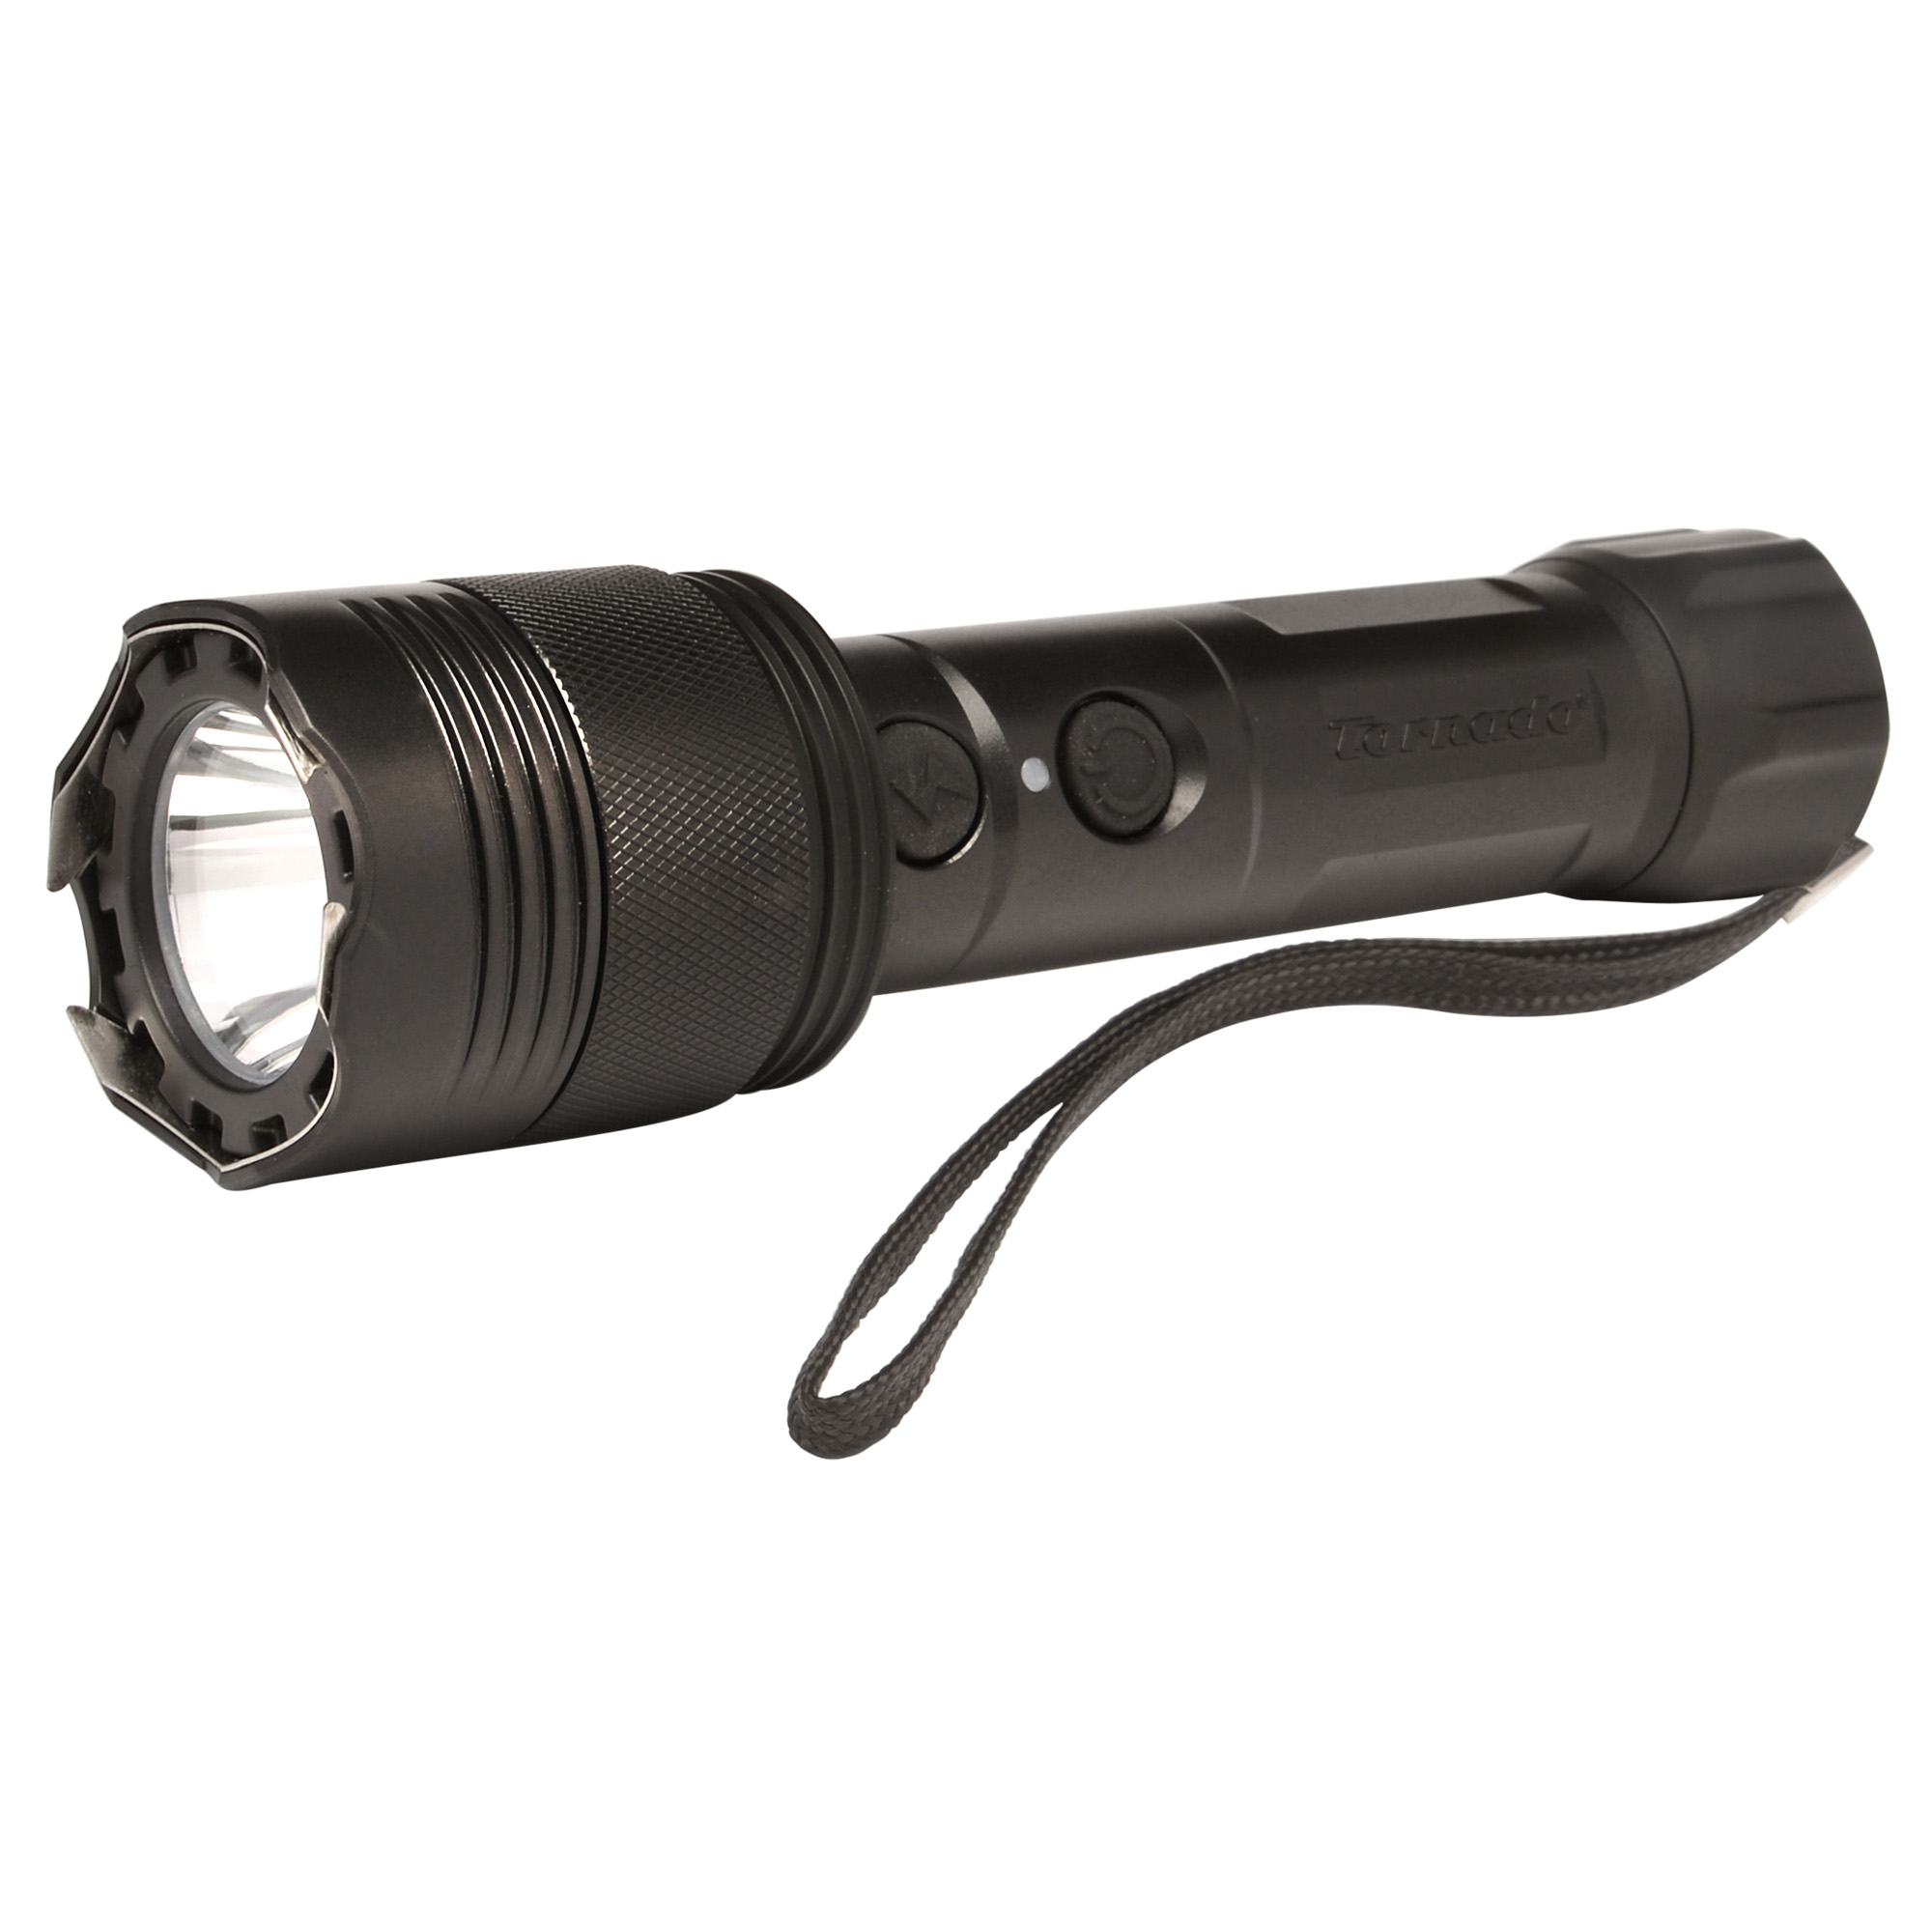 This Tornado stun gun features a powerful 120-lumen light and can power both the light and the stun feature simultaneously. Includes tactical holster.